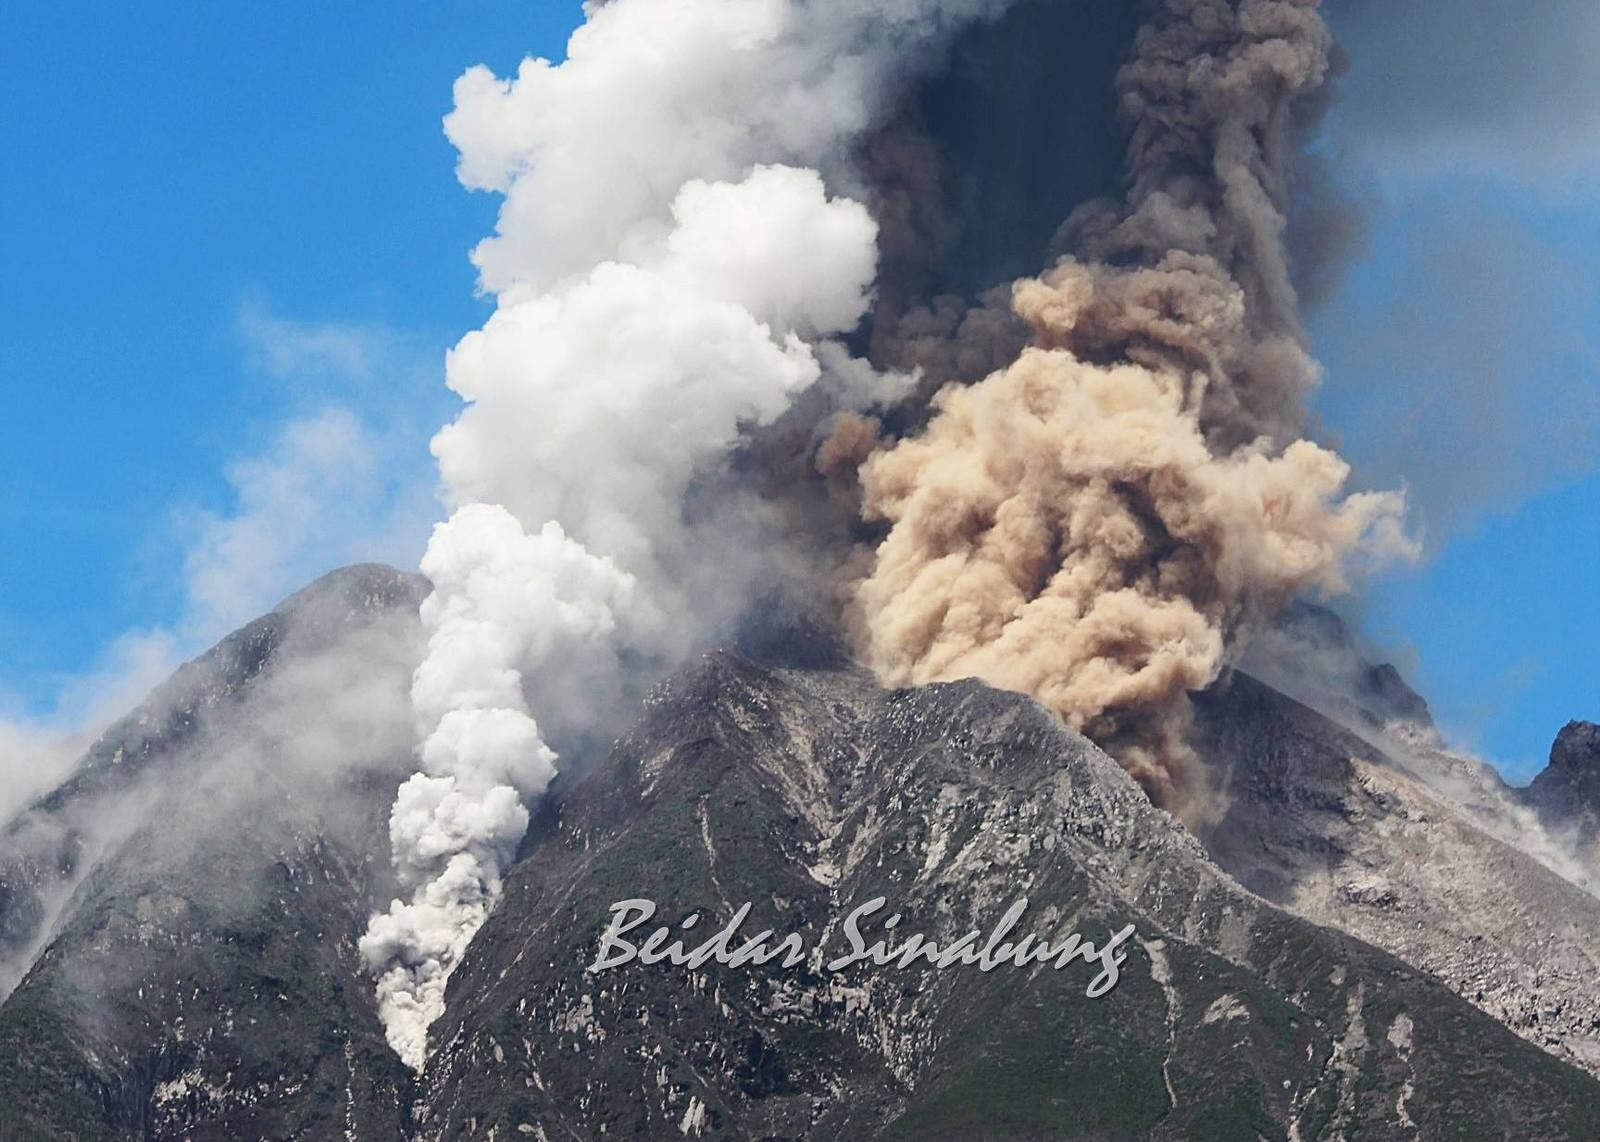 Enhanced volcanic activity and eruption at Sinabung volcano on February 4, 2017